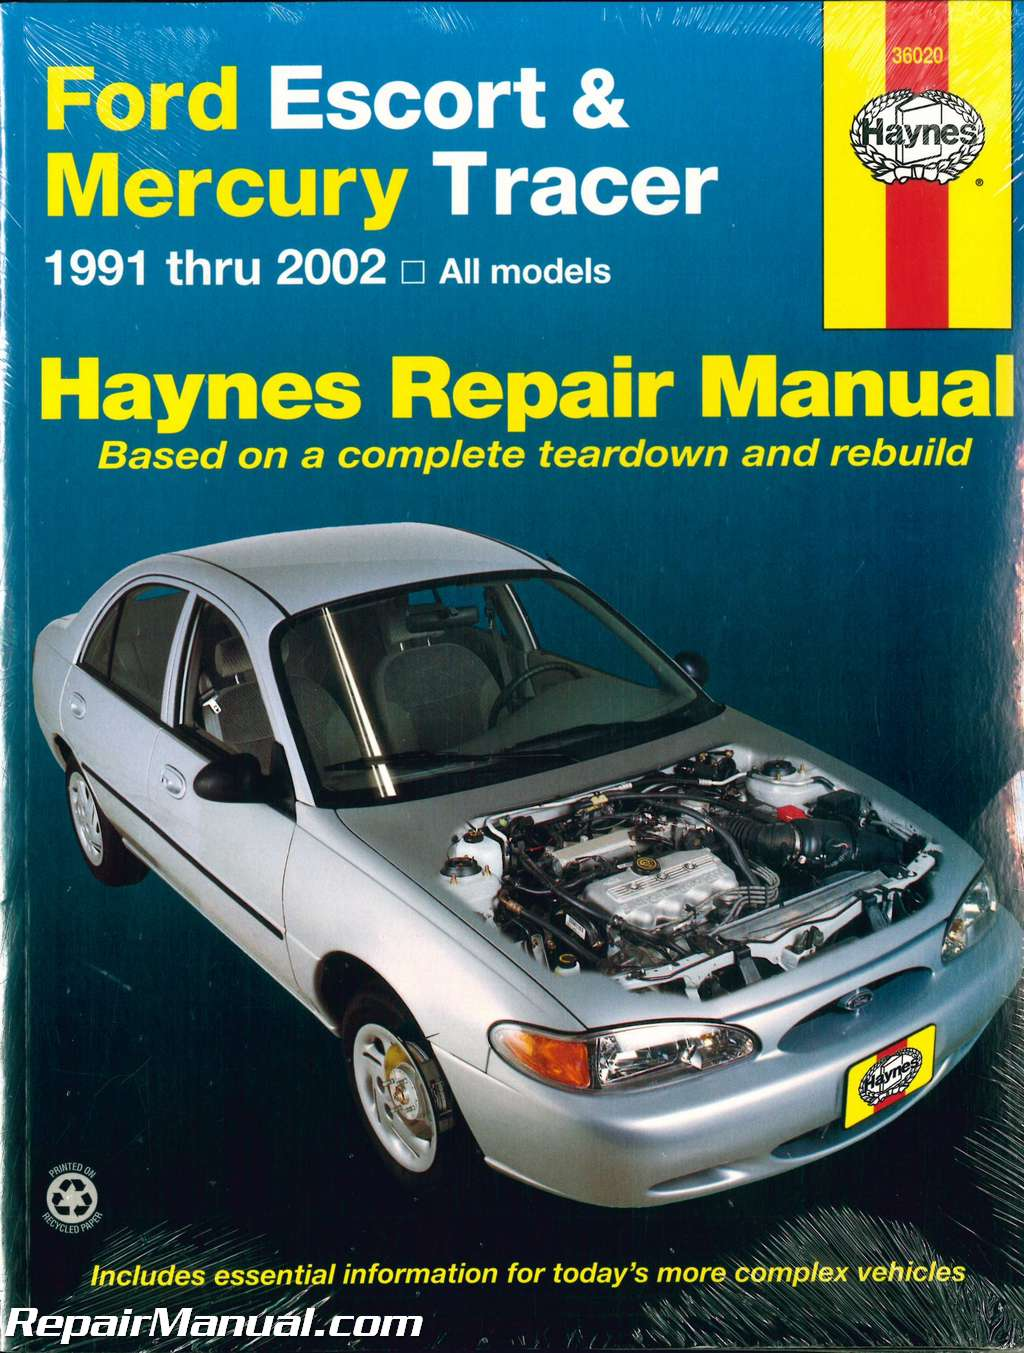 1991 2002 ford escort and mercury tracer automobile repair manual by rh  repairmanual com Chilton Repair Manuals Ford Everest Ford ZX2 Repair Manual